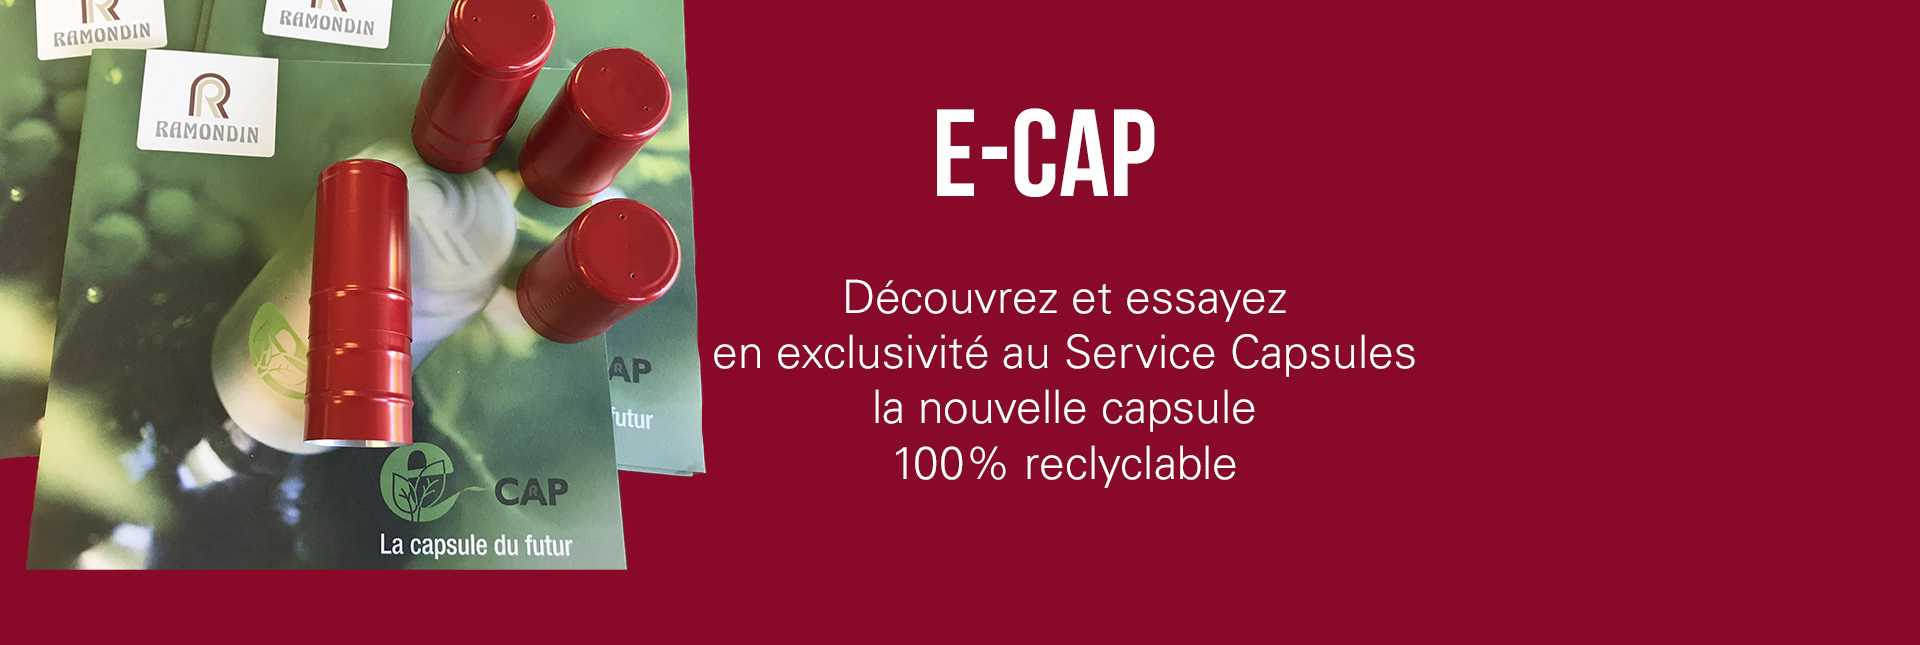 E-CAP : LA CAPSULE 100% RECYCLABLE